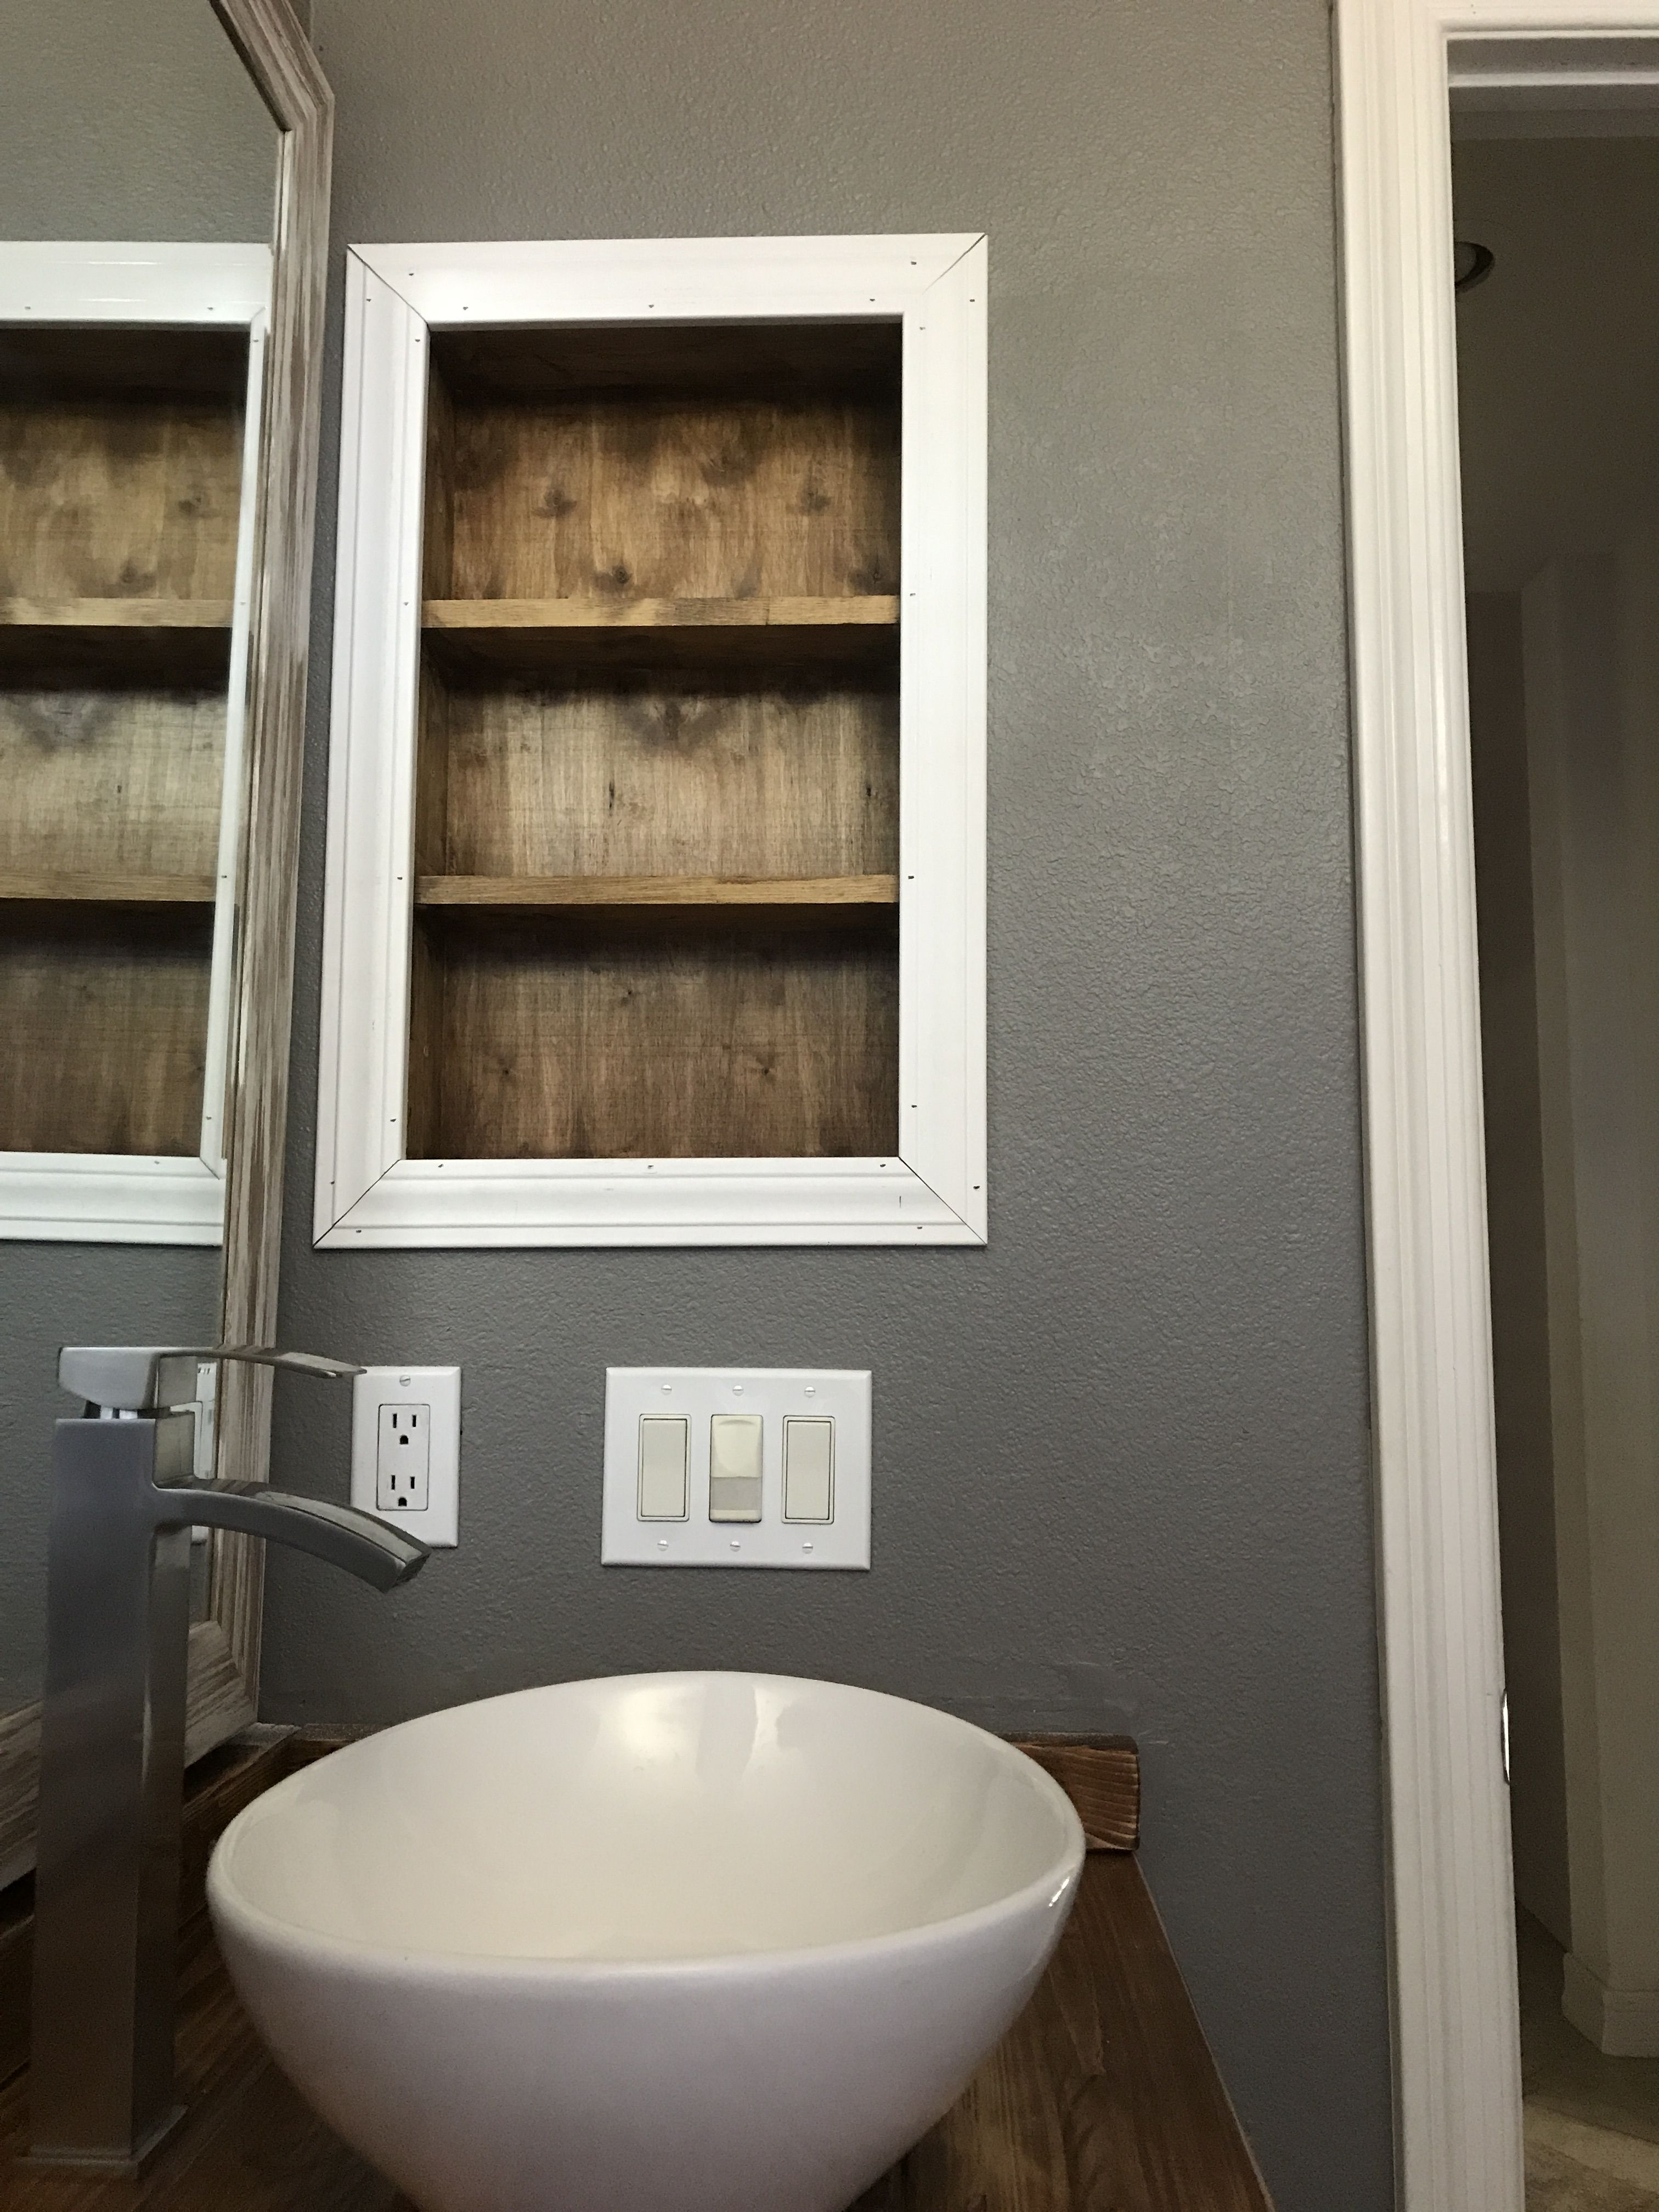 Bathroom Shelf Nook No Medicine Cabinet Remove Medicine Cabinet Bathroom Bathroom Makeover Upstairs Bathrooms Bathroom Decor